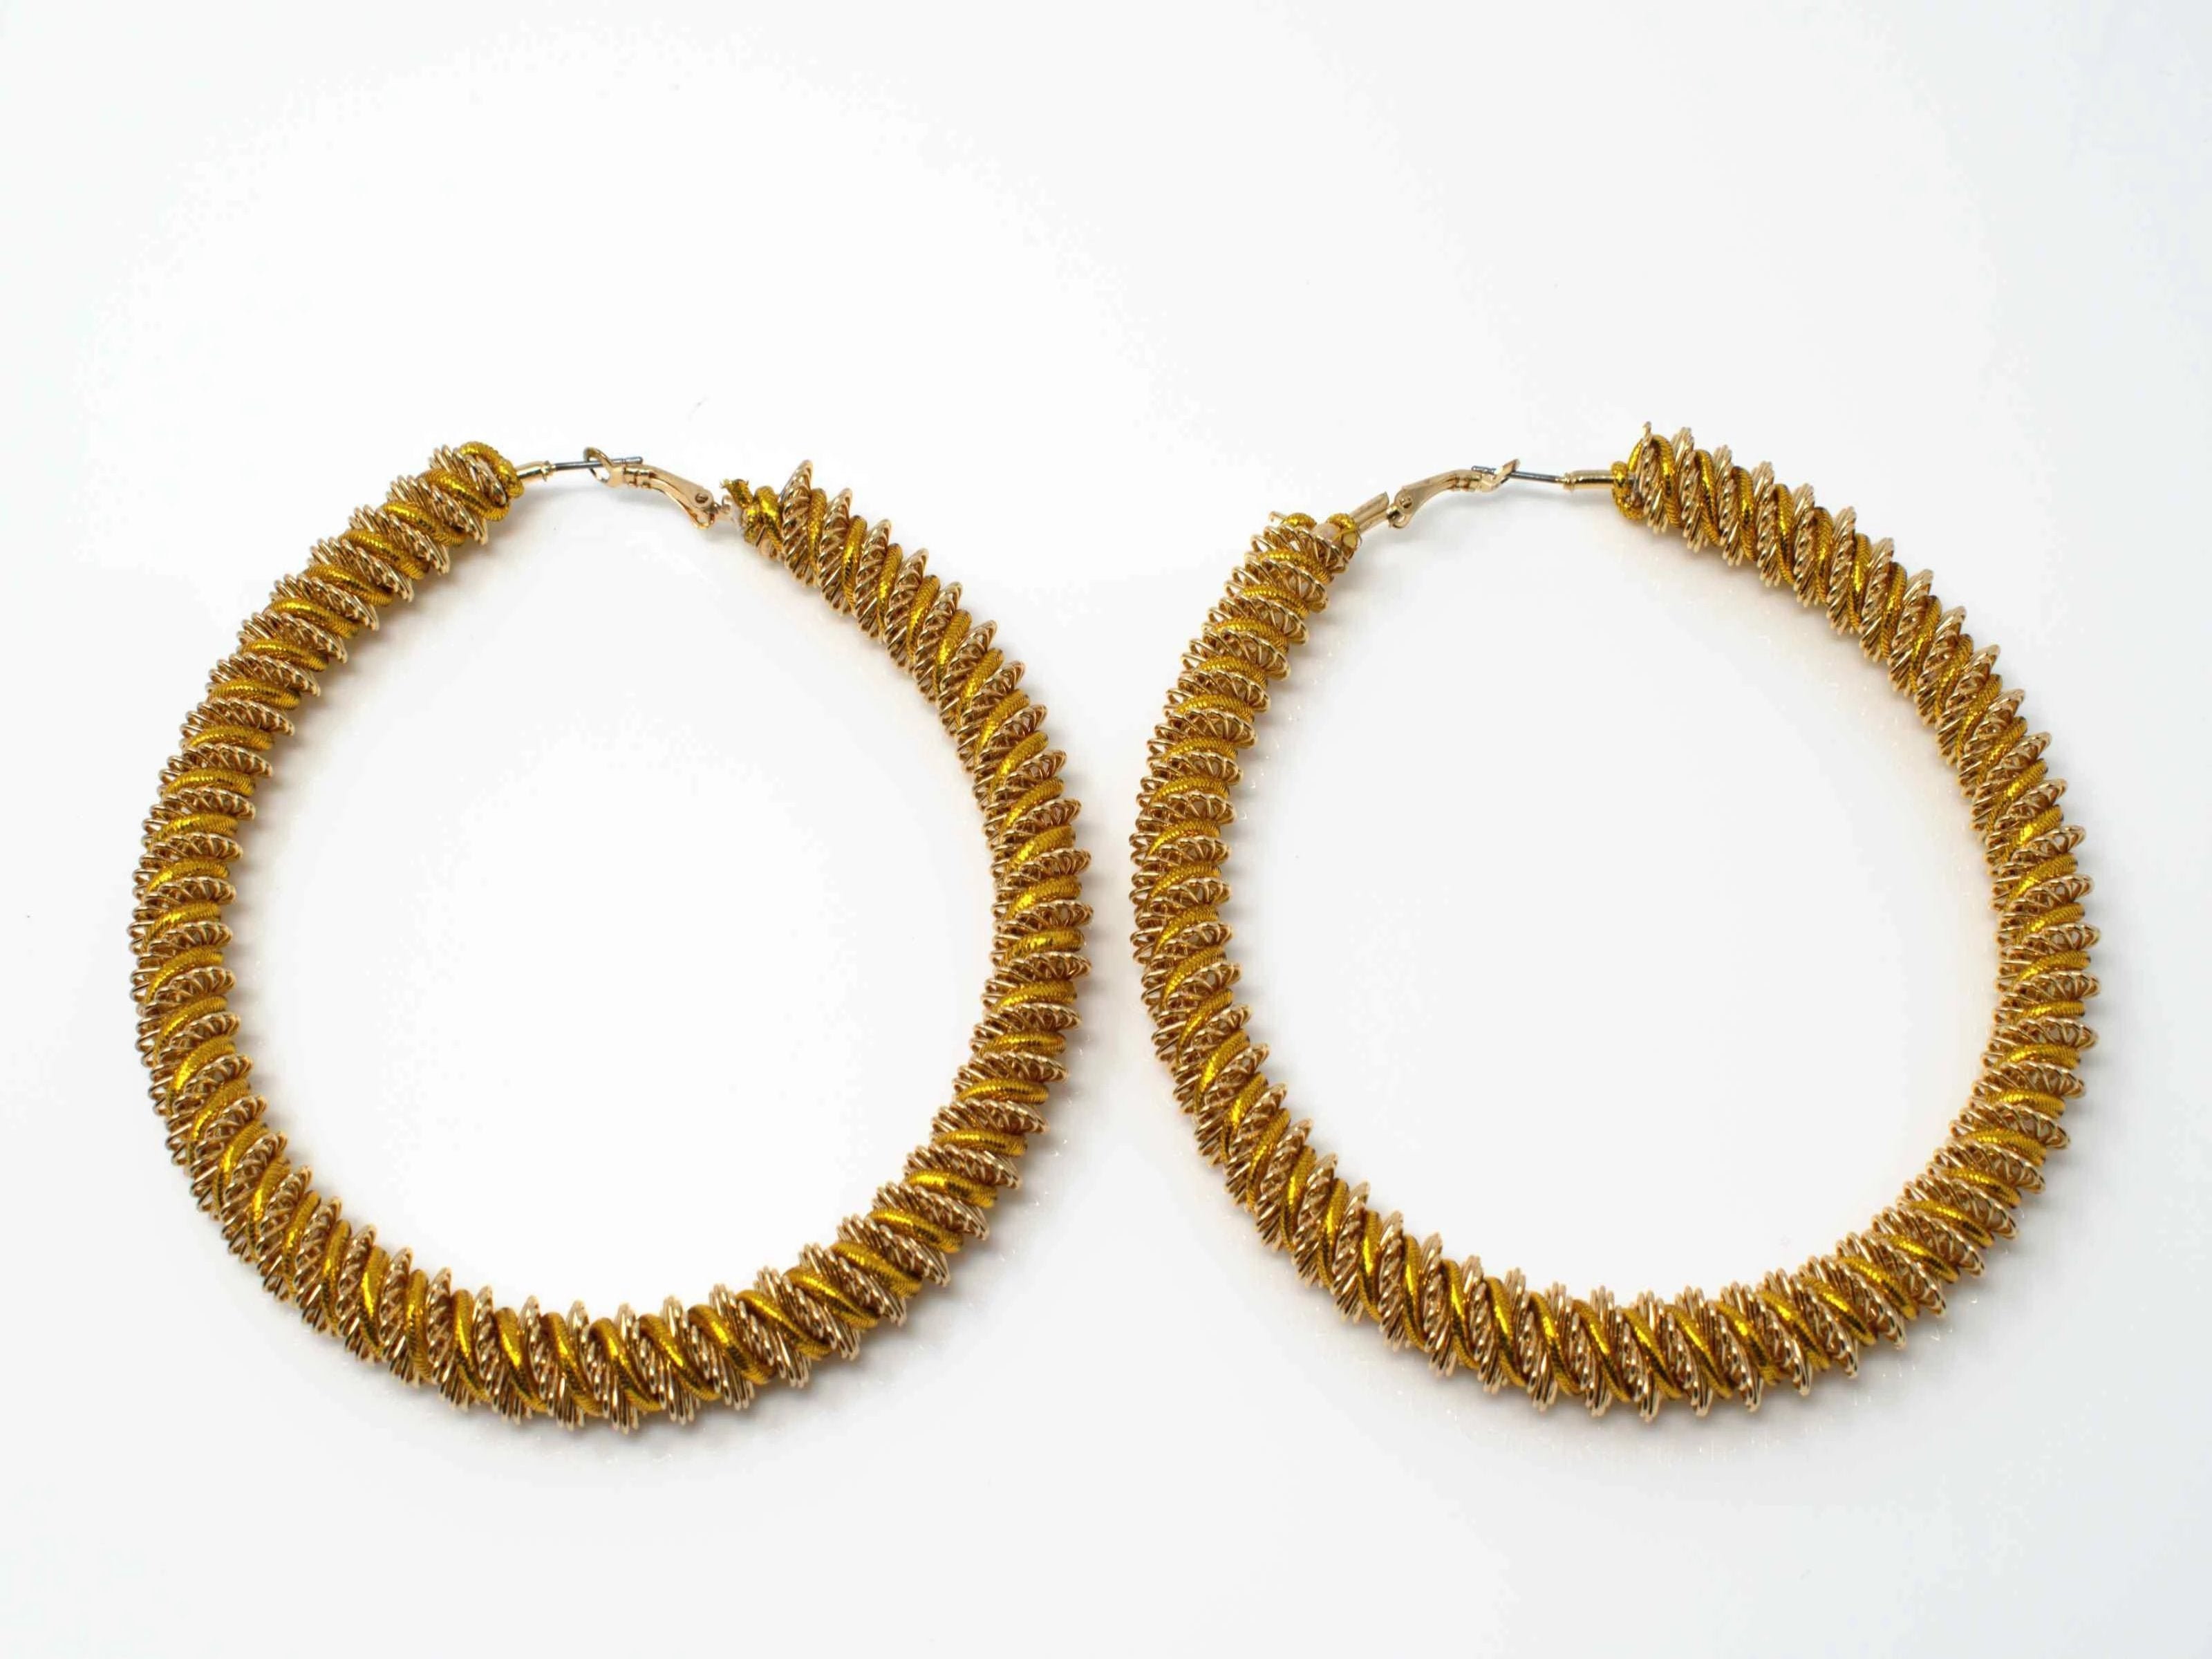 A striking stylish gold with gold trim oversized hoop with its reworked design improves on a classic.